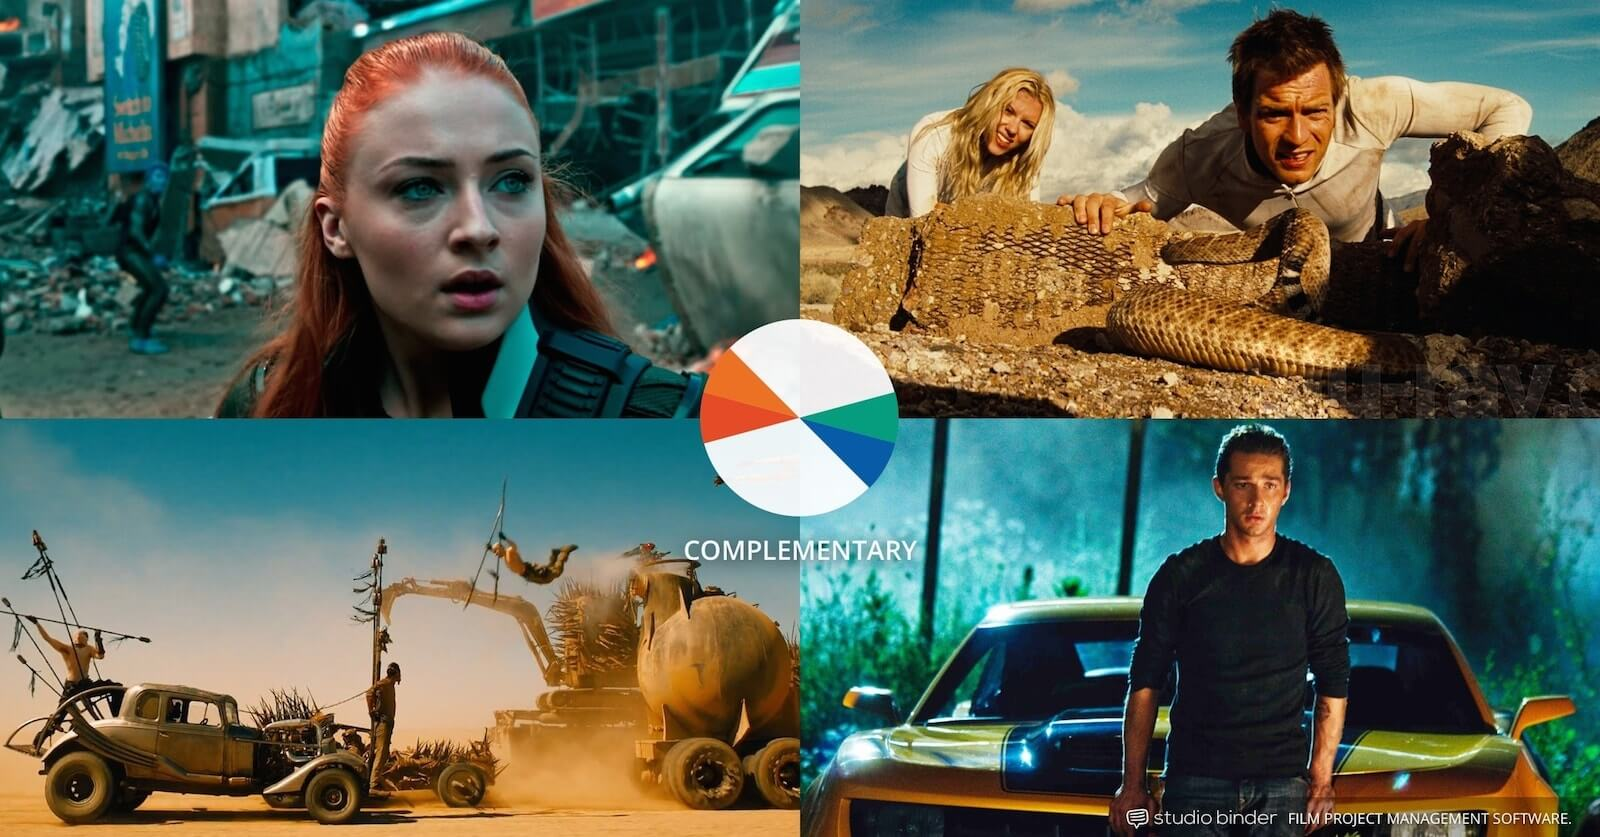 How to Use Color in Film - Example of Movie Color Palette and Schemes - Complementary Orange and Teal-min